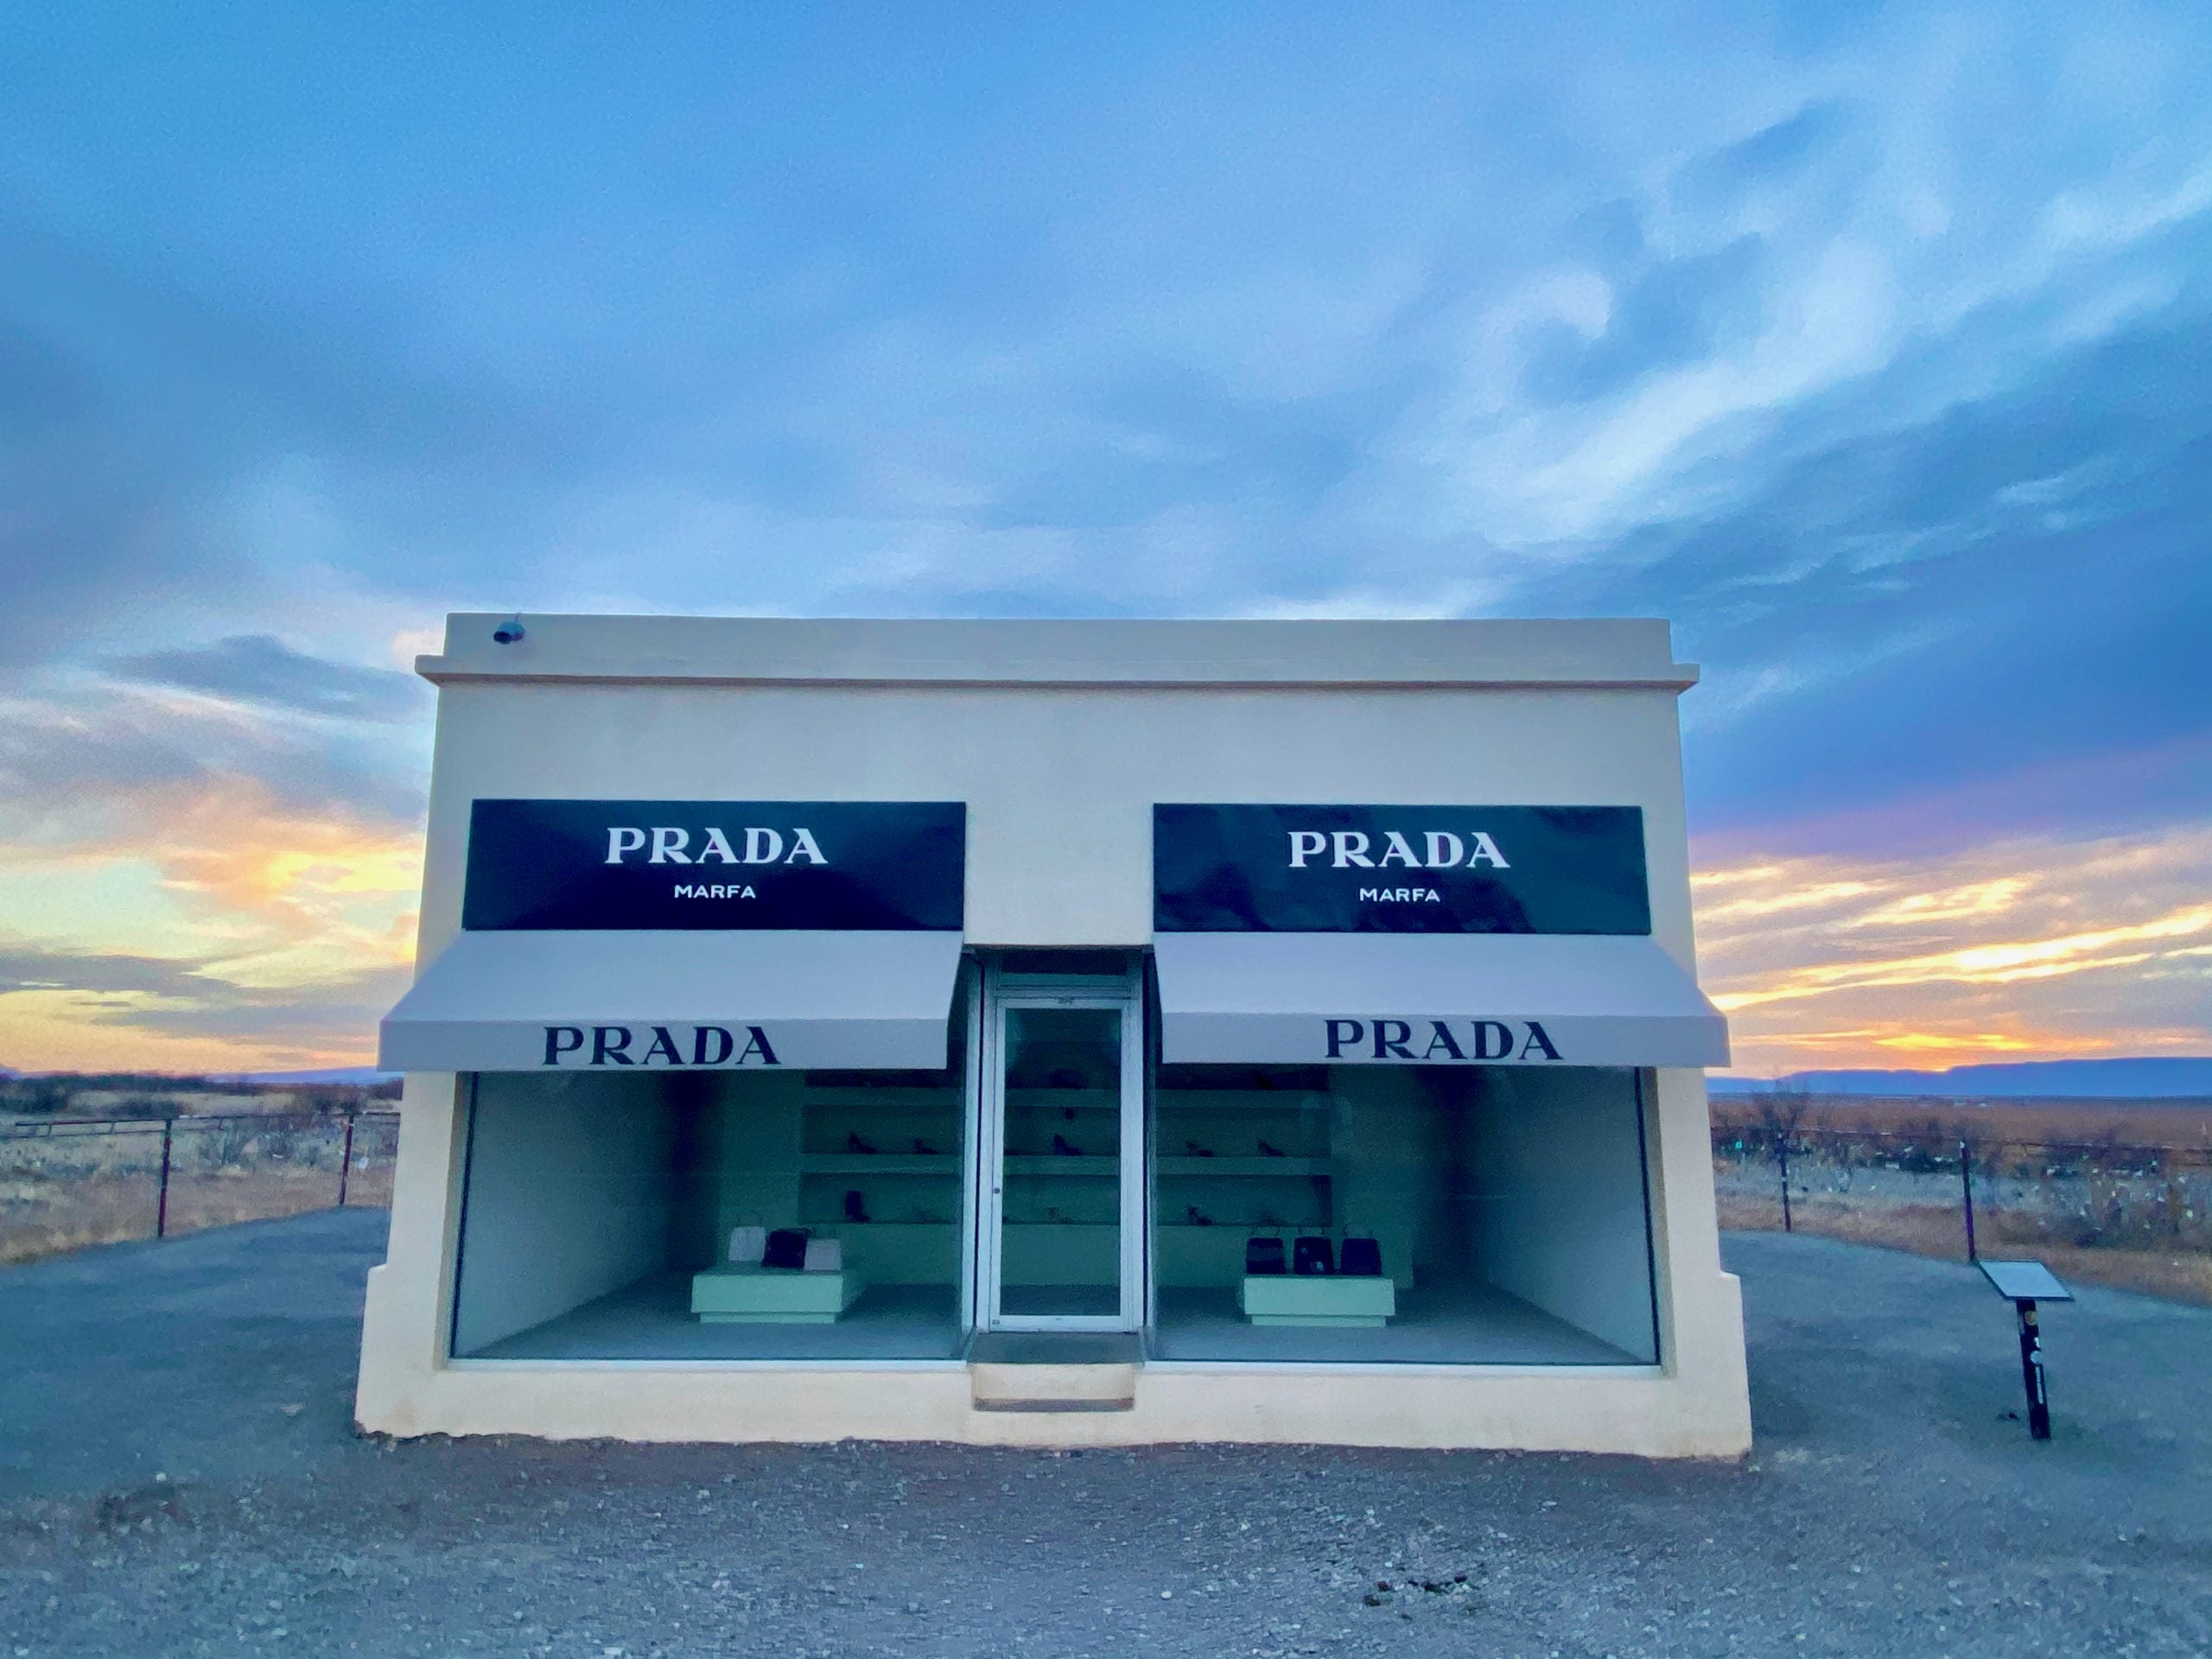 5 ways Marfa is the weirdest (and coolest) town in Texas - The Points Guy